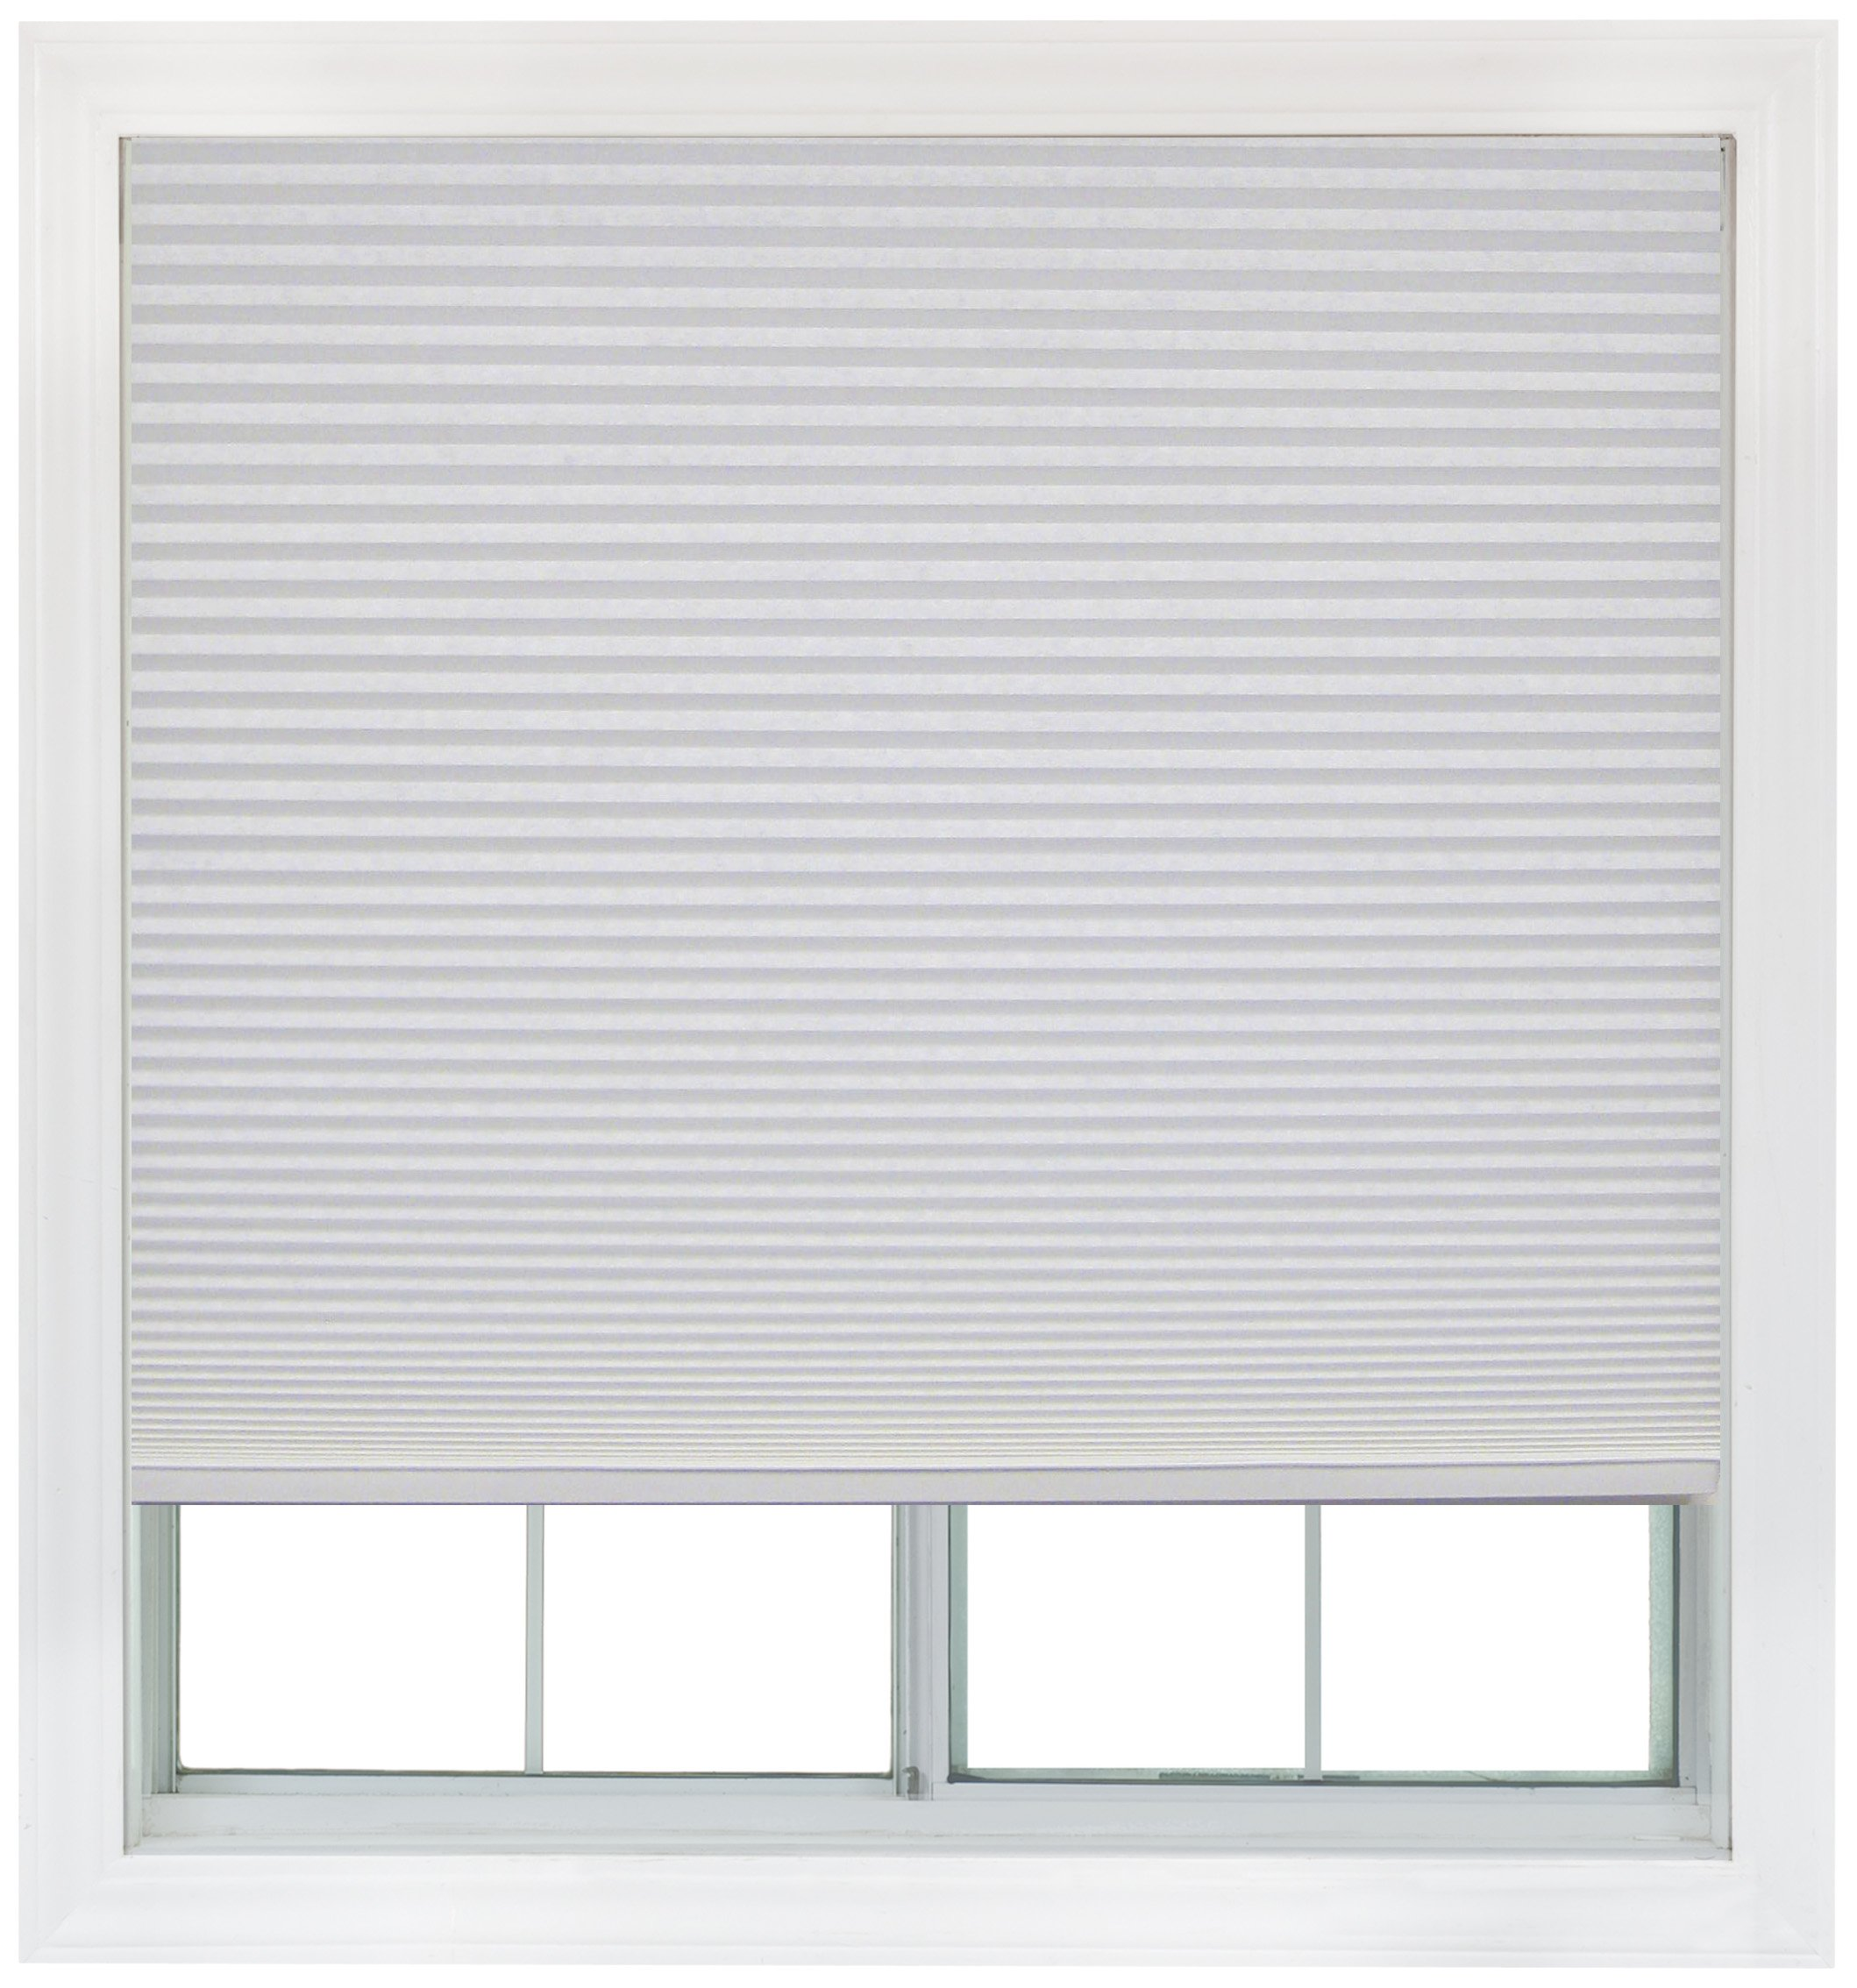 Easy Lift, 48-inch by 64-inch, Trim-at-Home (fits windows 28-inches to 48-inches wide) Cordless Honeycomb Cellular Shade, Light Filtering, White